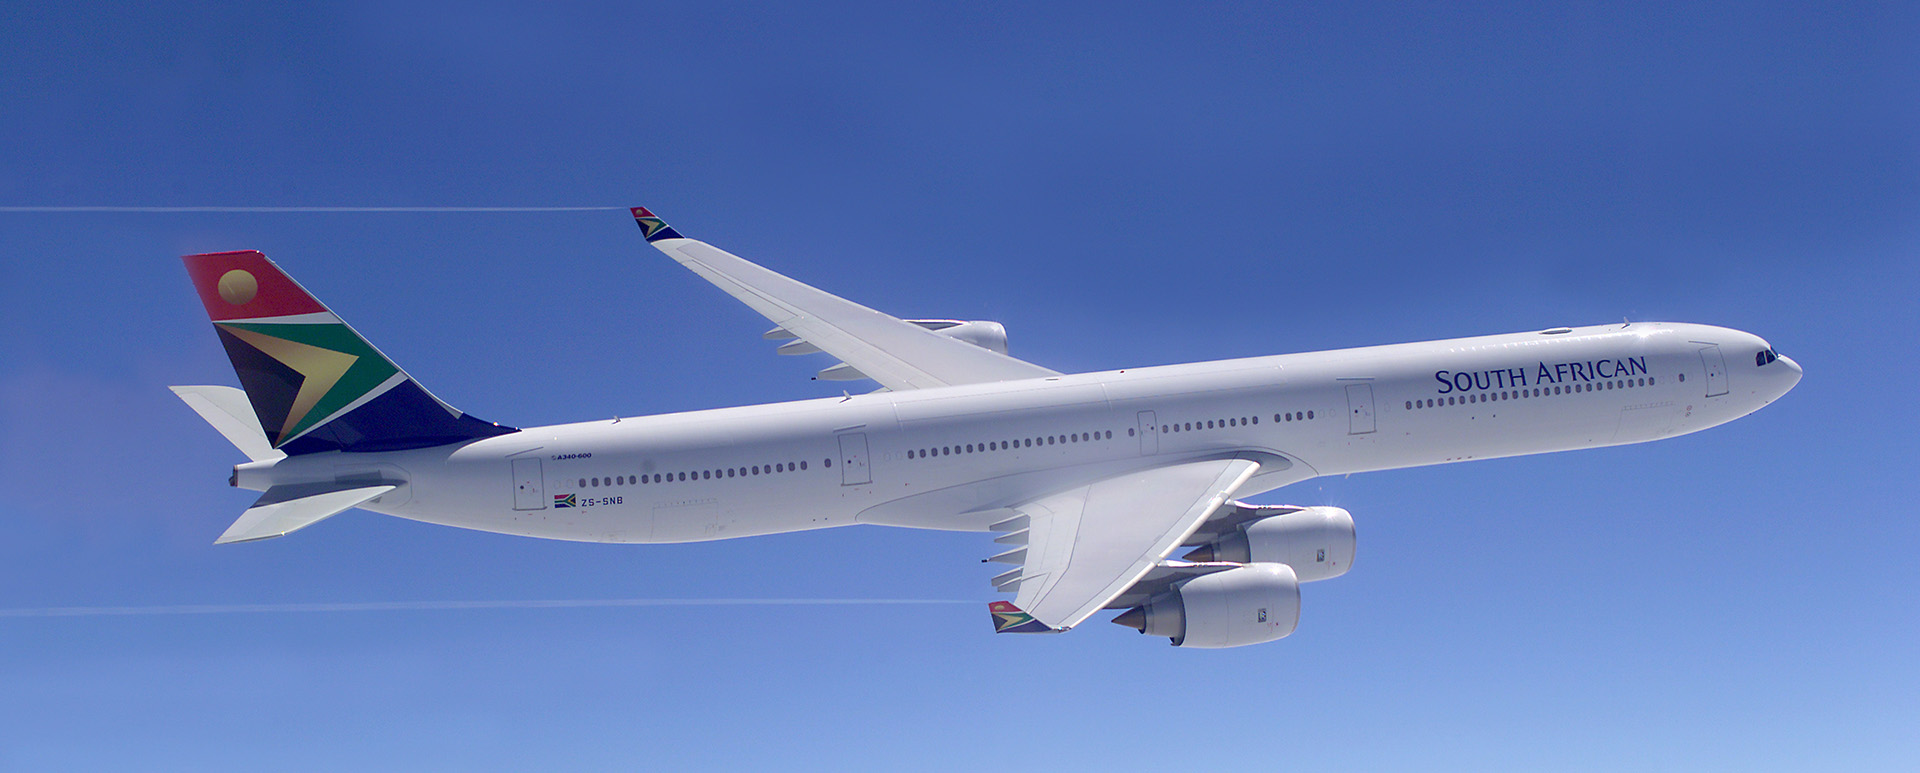 SouthAfricanAirlines